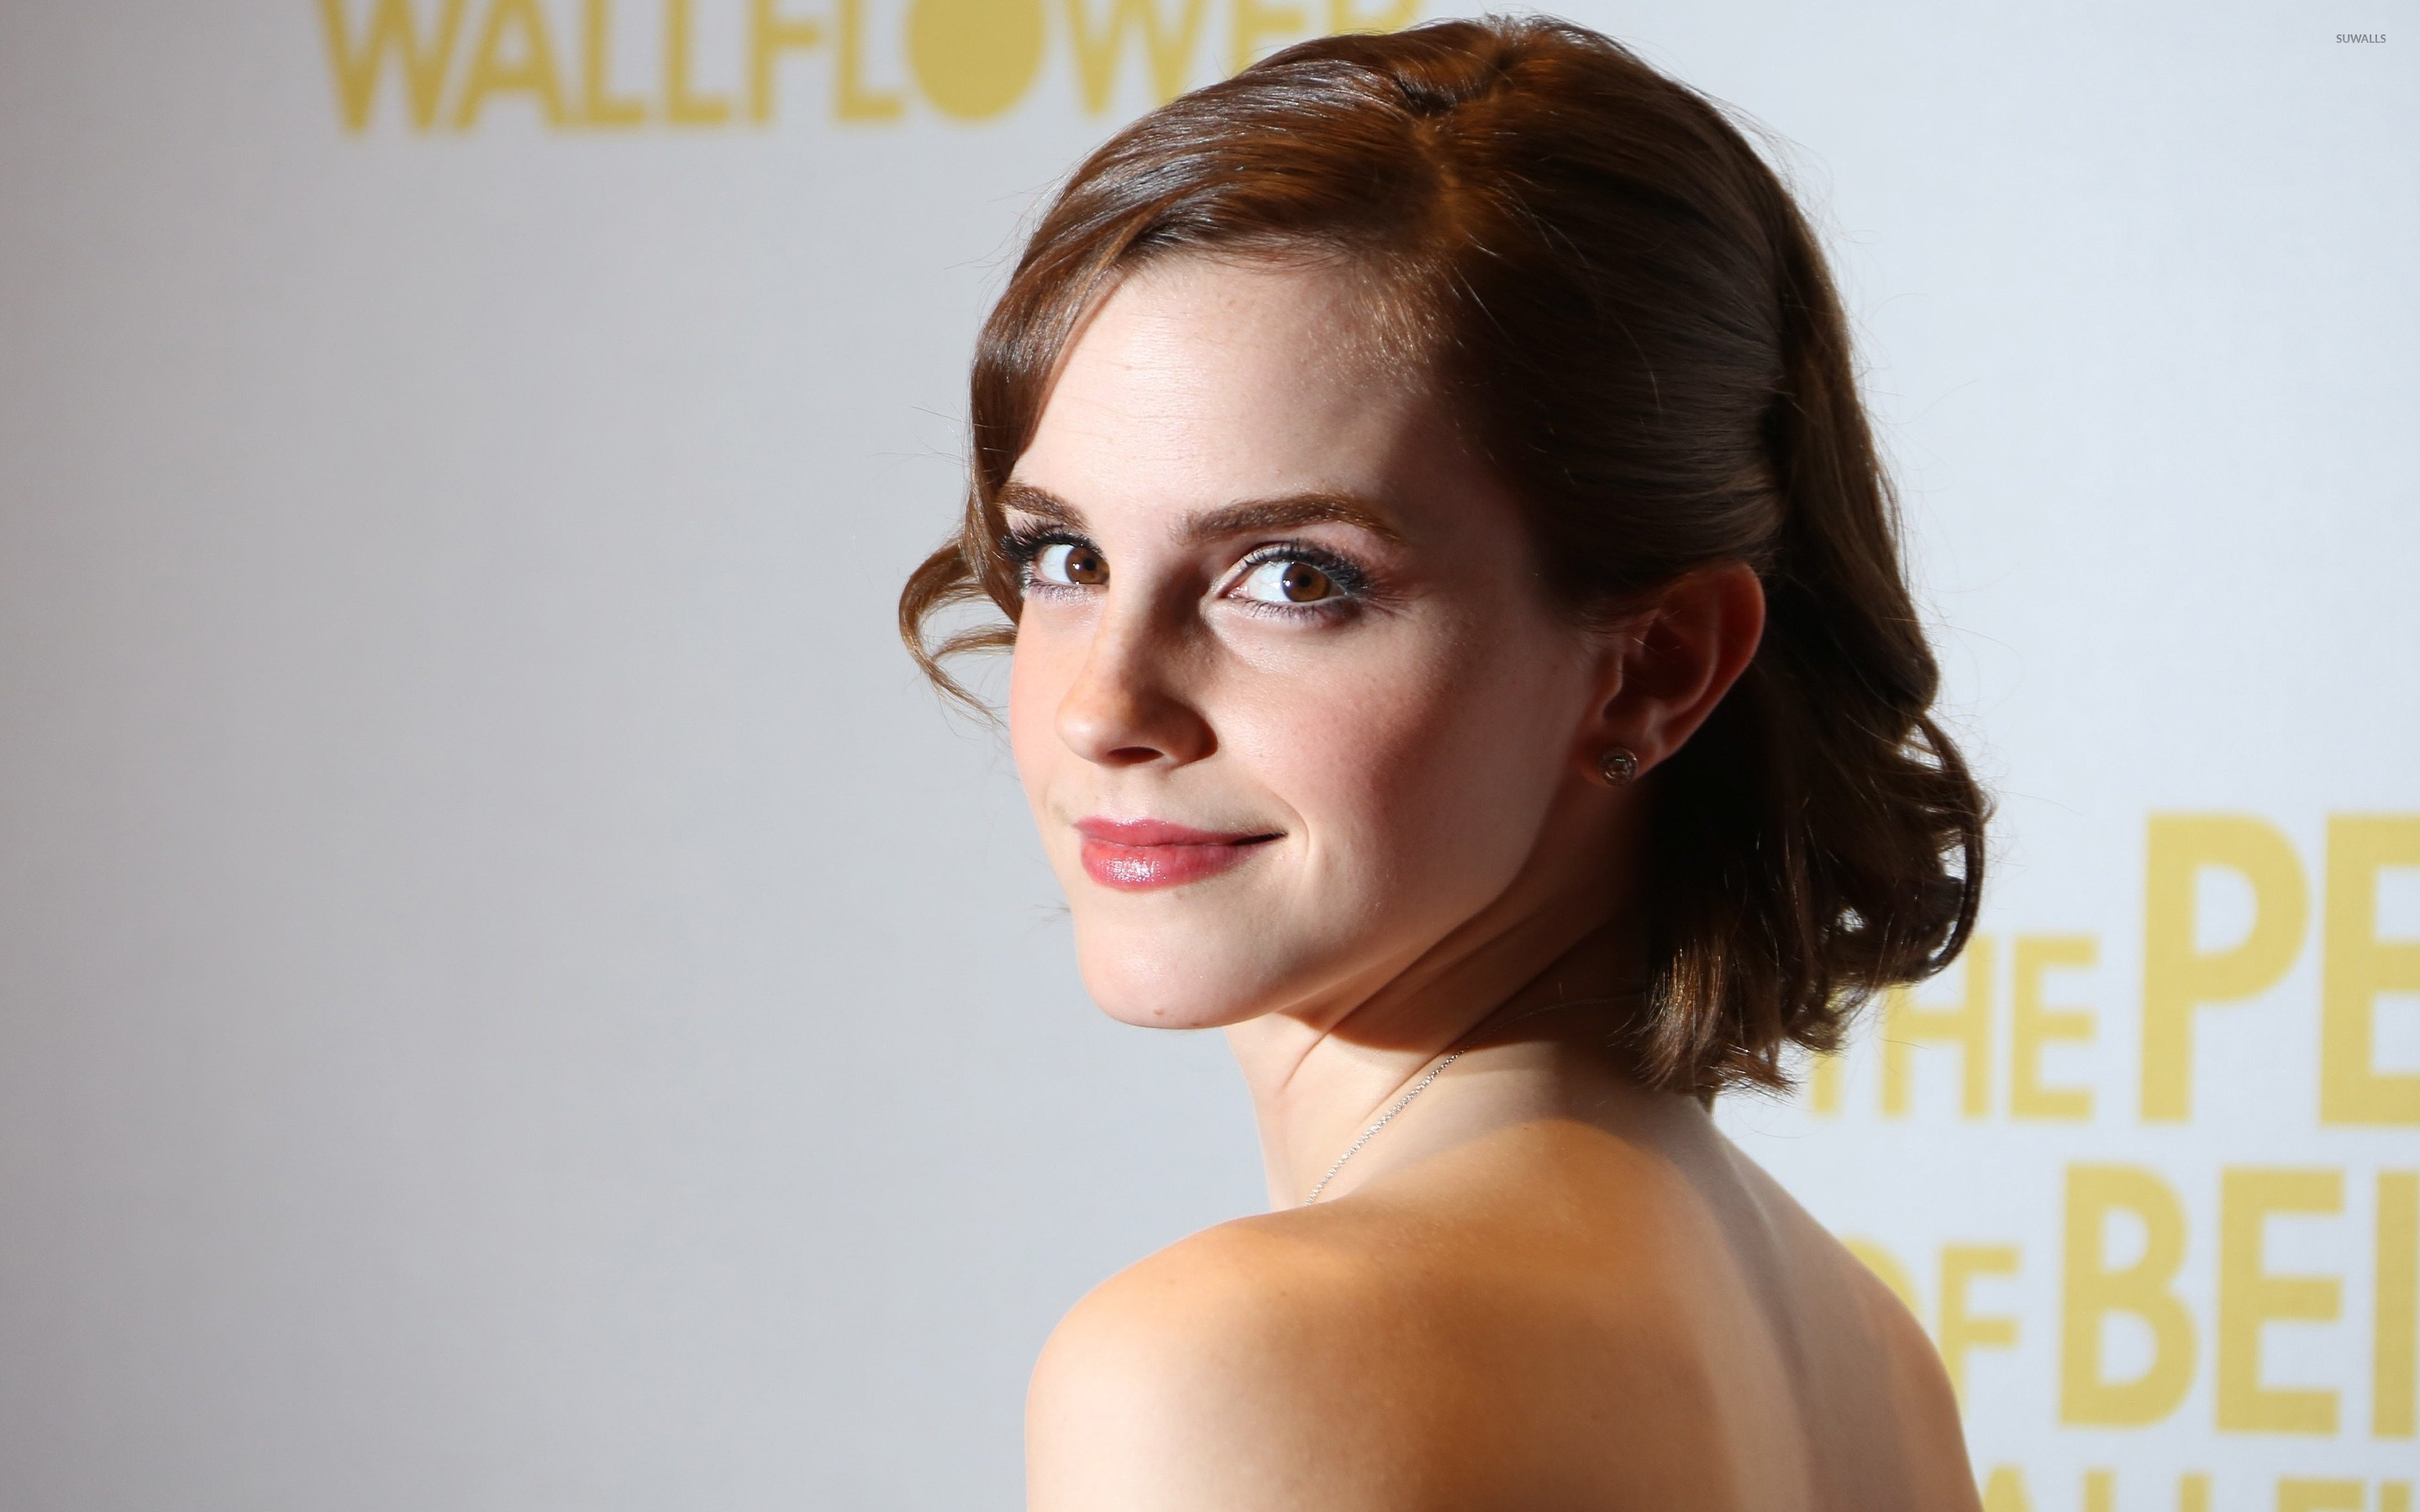 Emma Watson at a celebrity event wallpaper Celebrity wallpapers